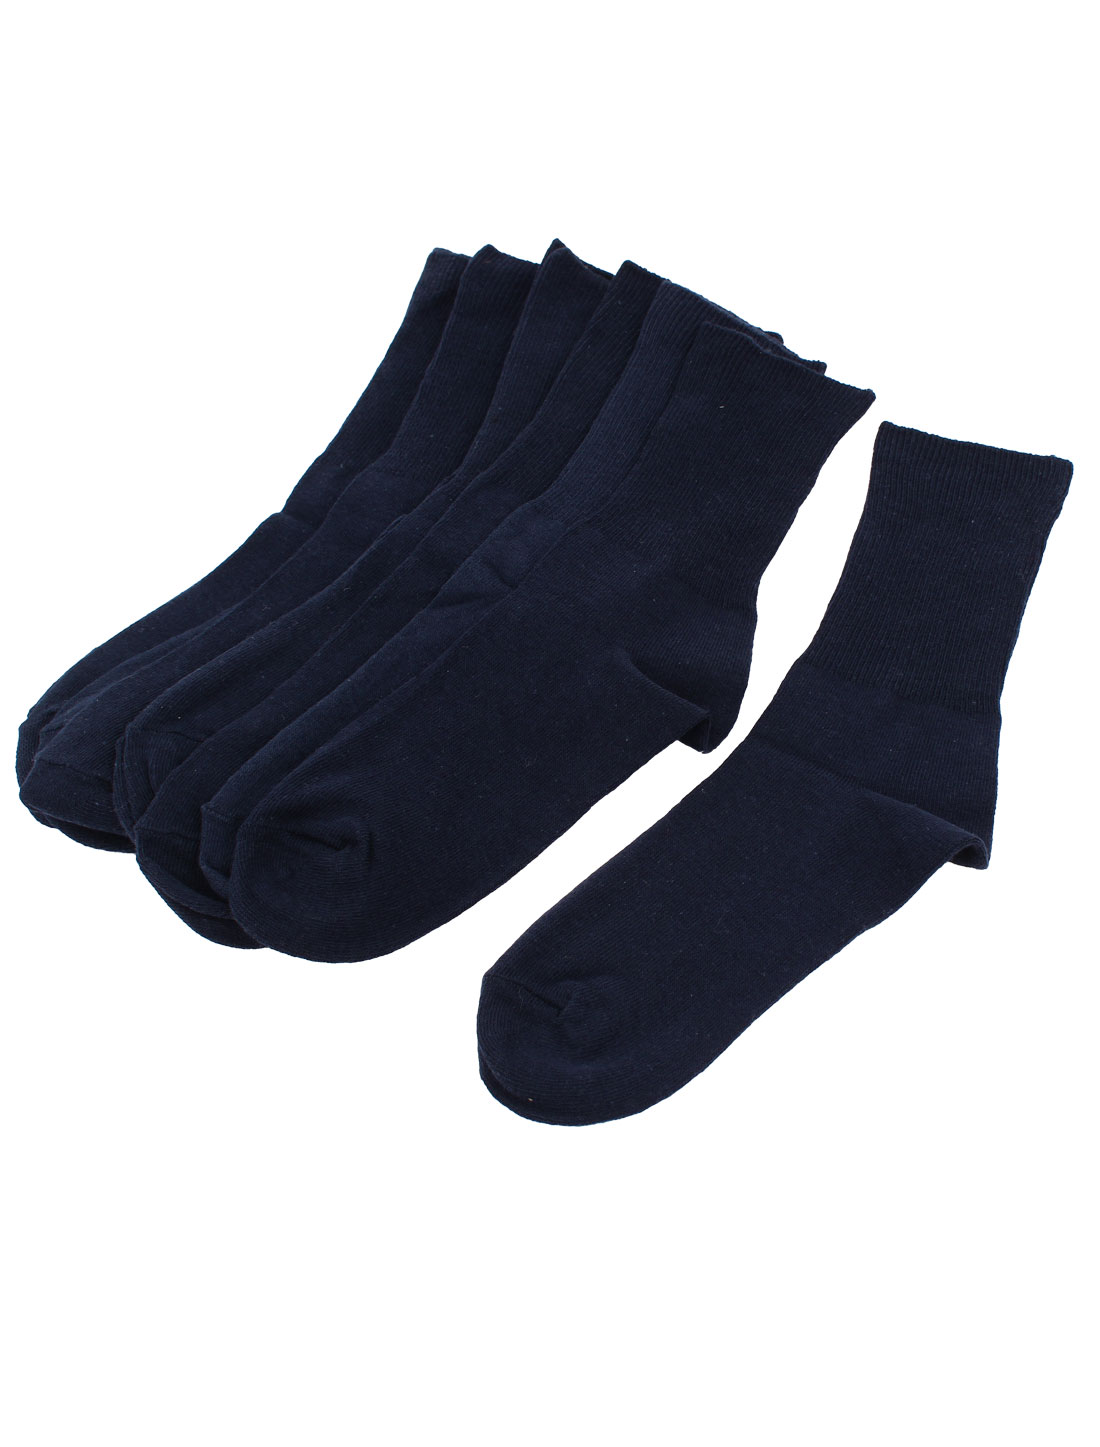 5Pairs Winter Business Casual Solid Color Cuff Ankle High Elastic Hosiery Socks Sockens Dark Blue for Men